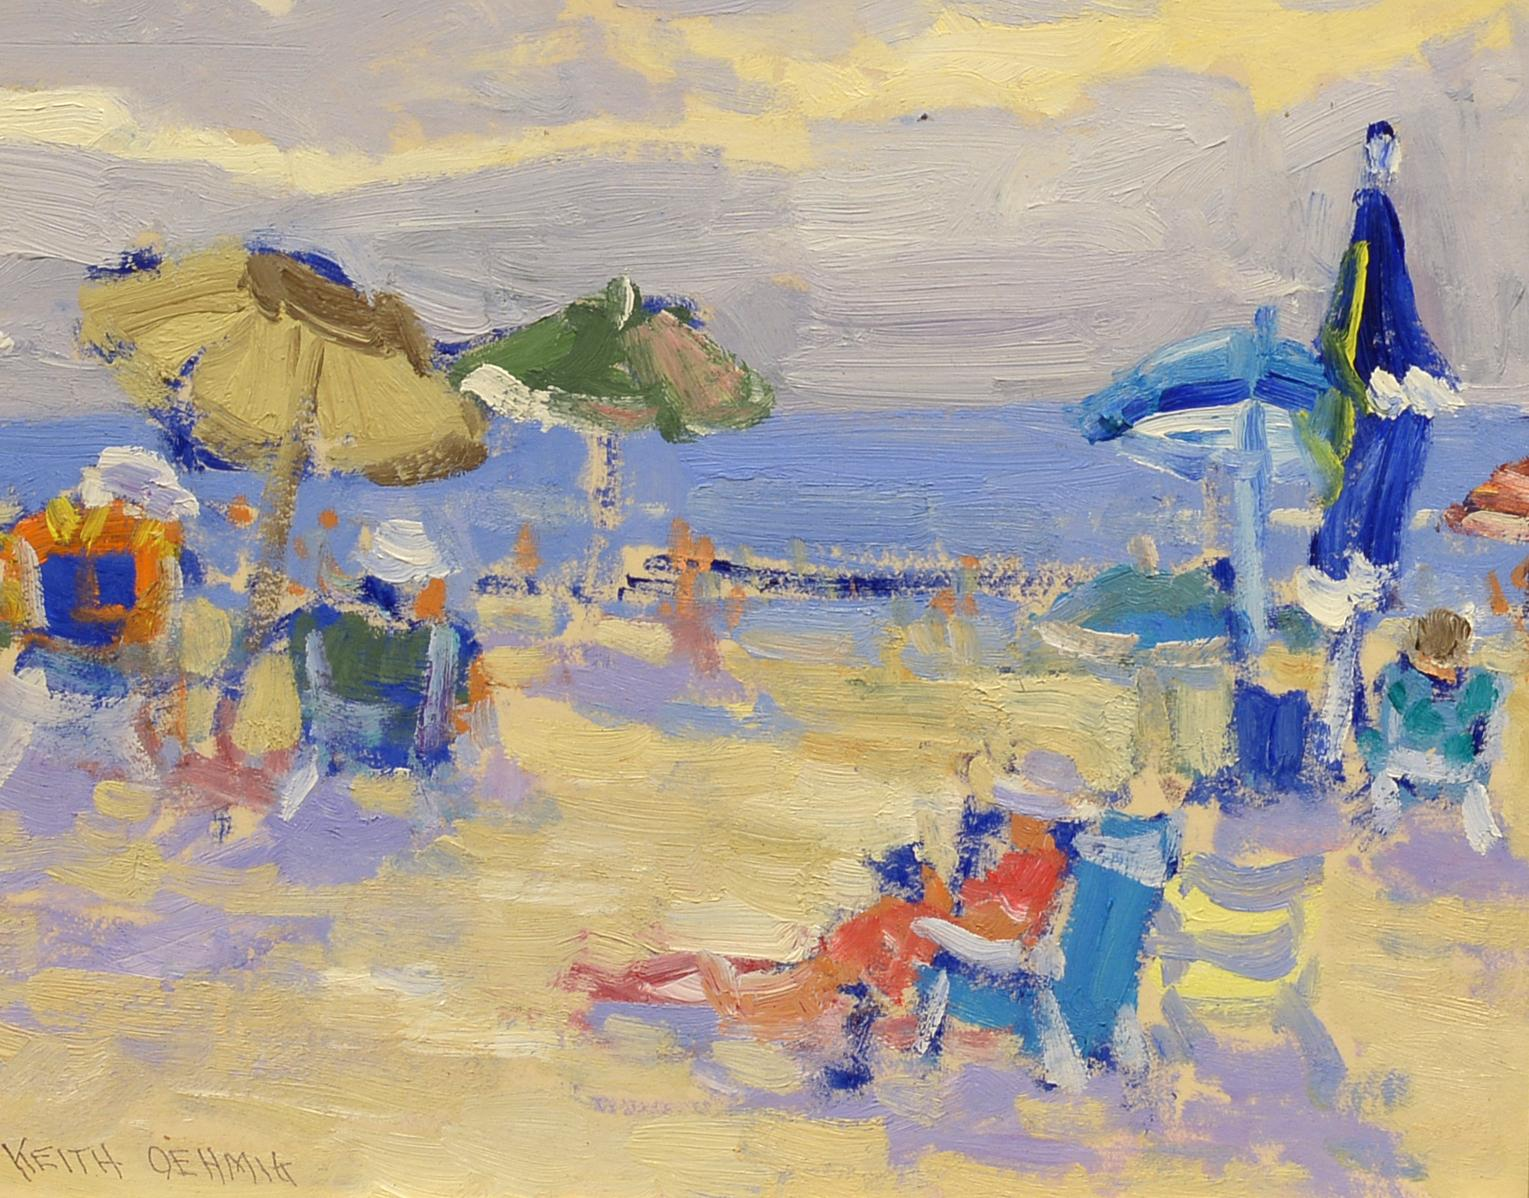 """""""At the Beach,"""" Keith Oehmig, oil landscape, impressionist, contemporary art"""